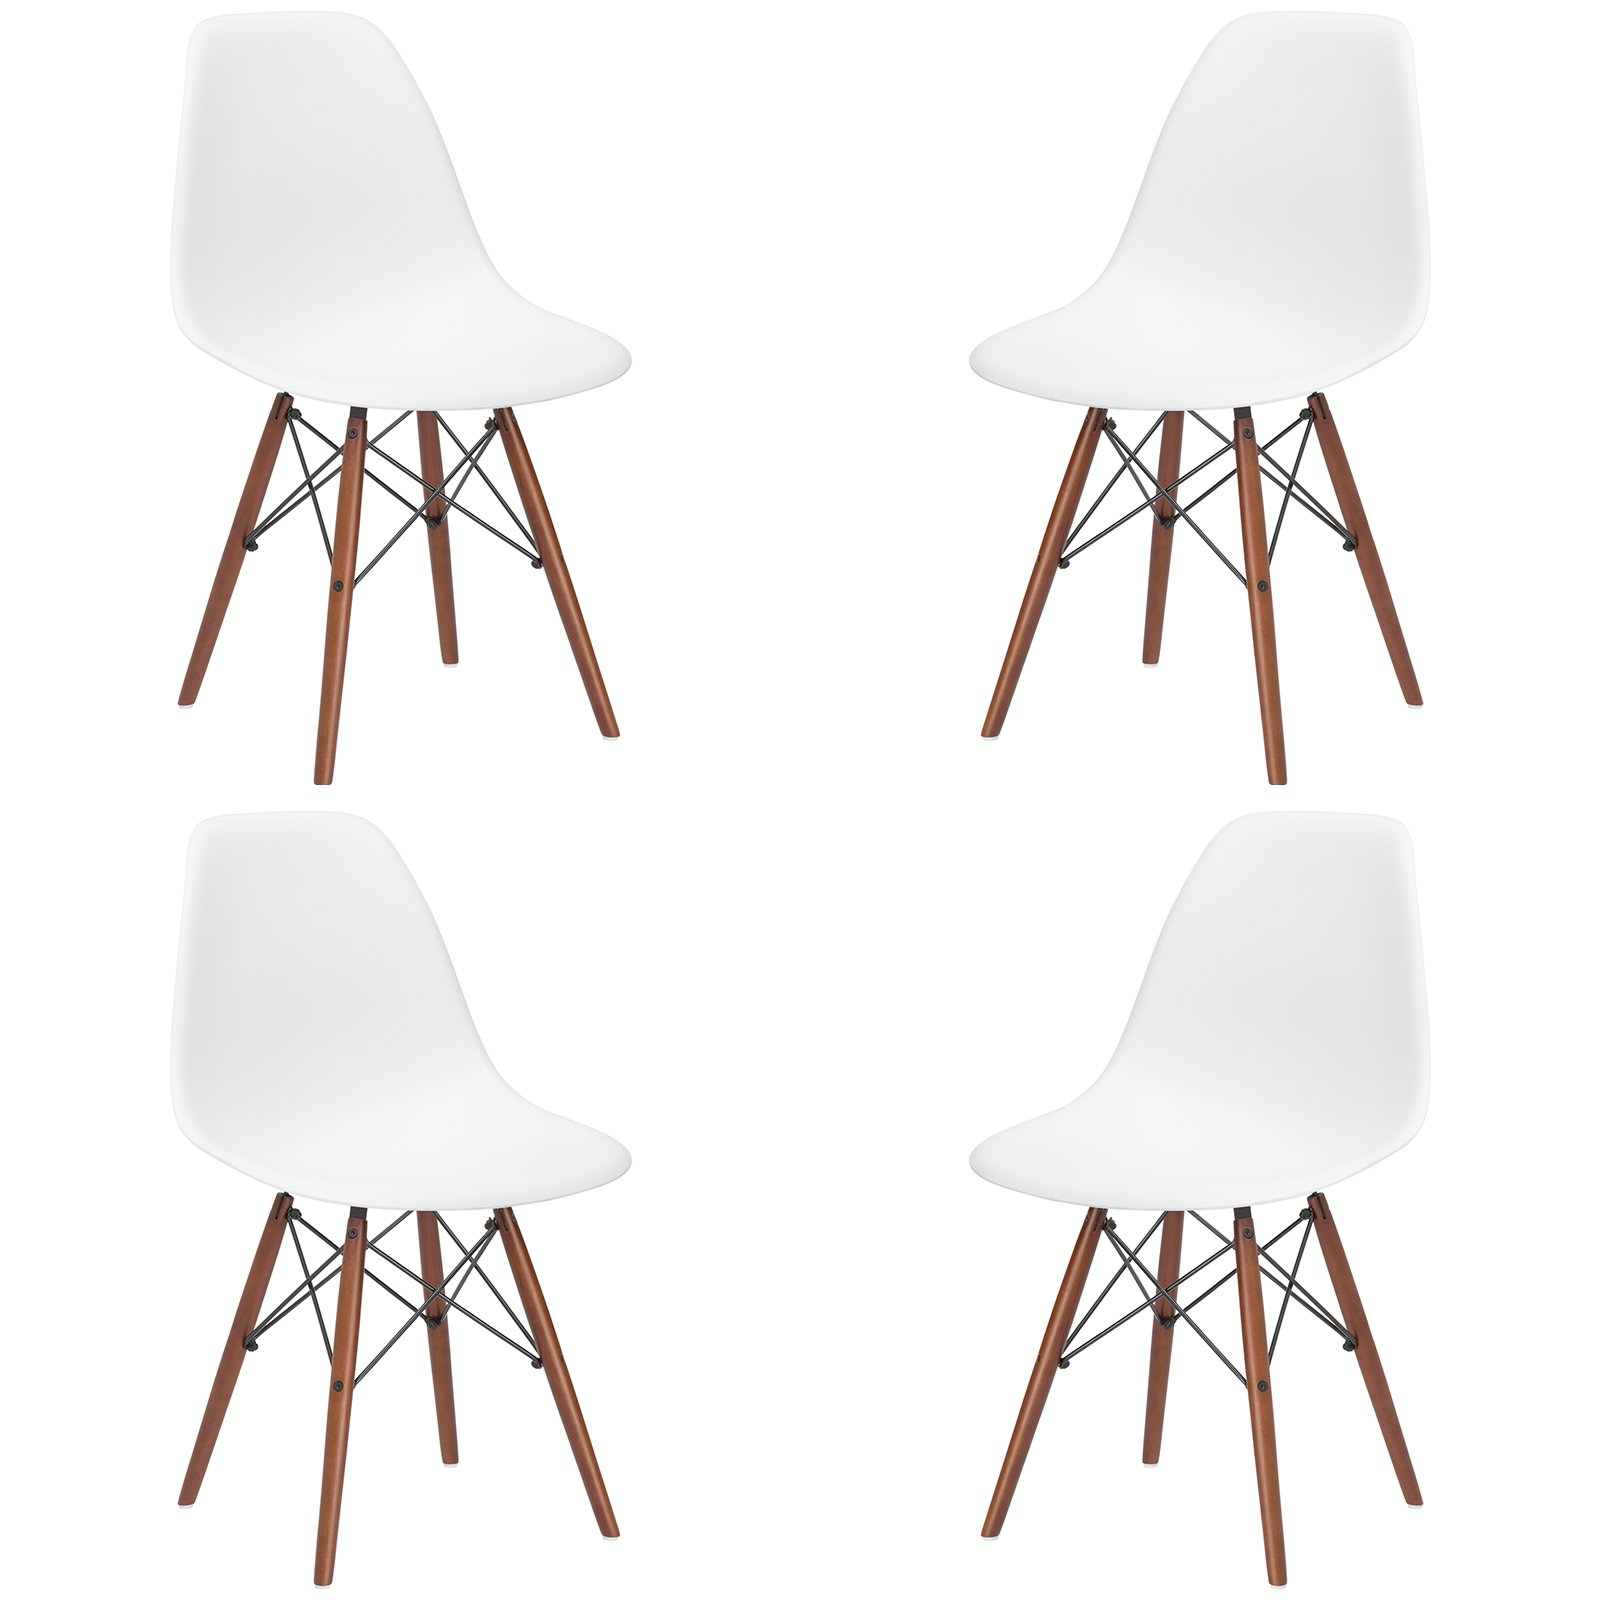 Poly and Bark Vortex Side Chair Walnut Legs, White, Set of 4 by Poly and Bark